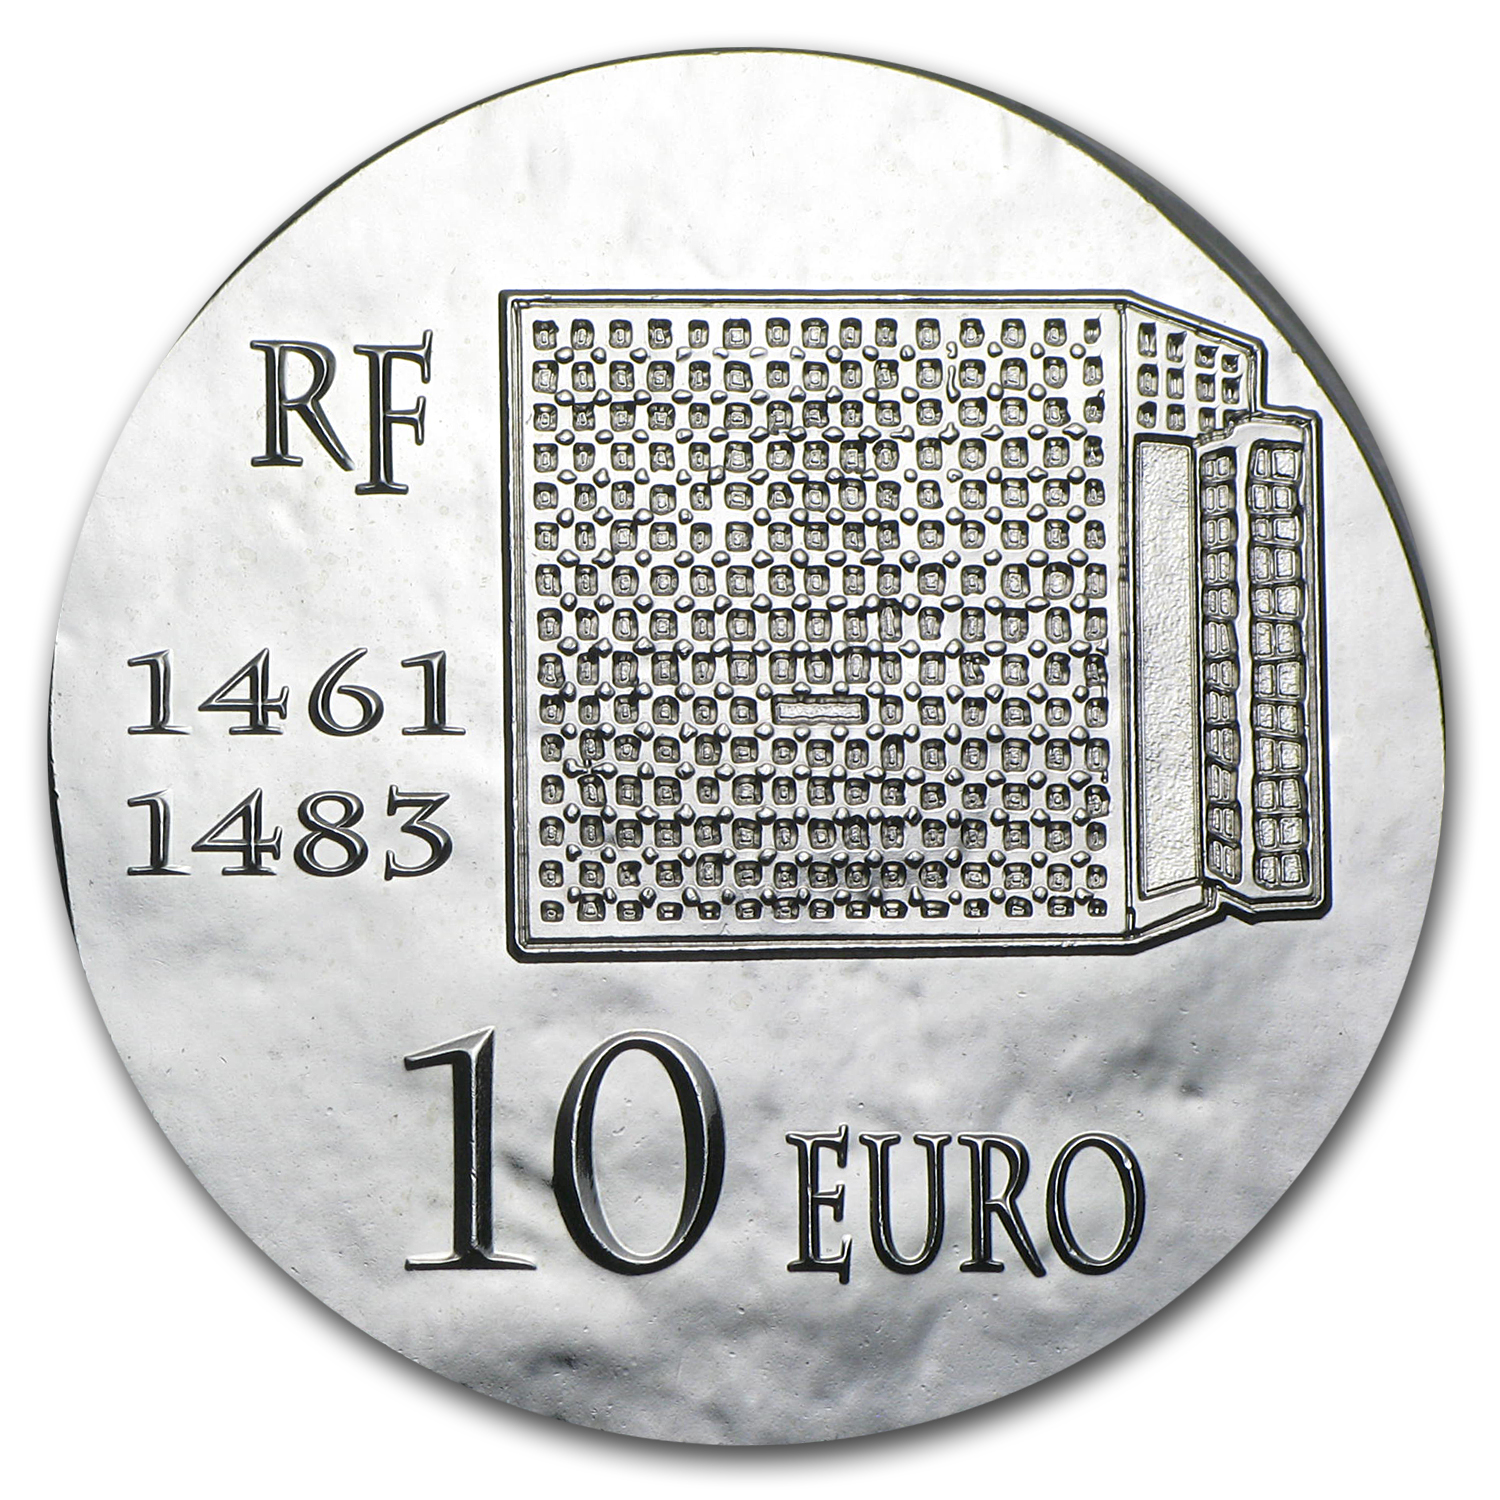 2013 France Silver €10 Legendary Collection Proof (Louis XI)